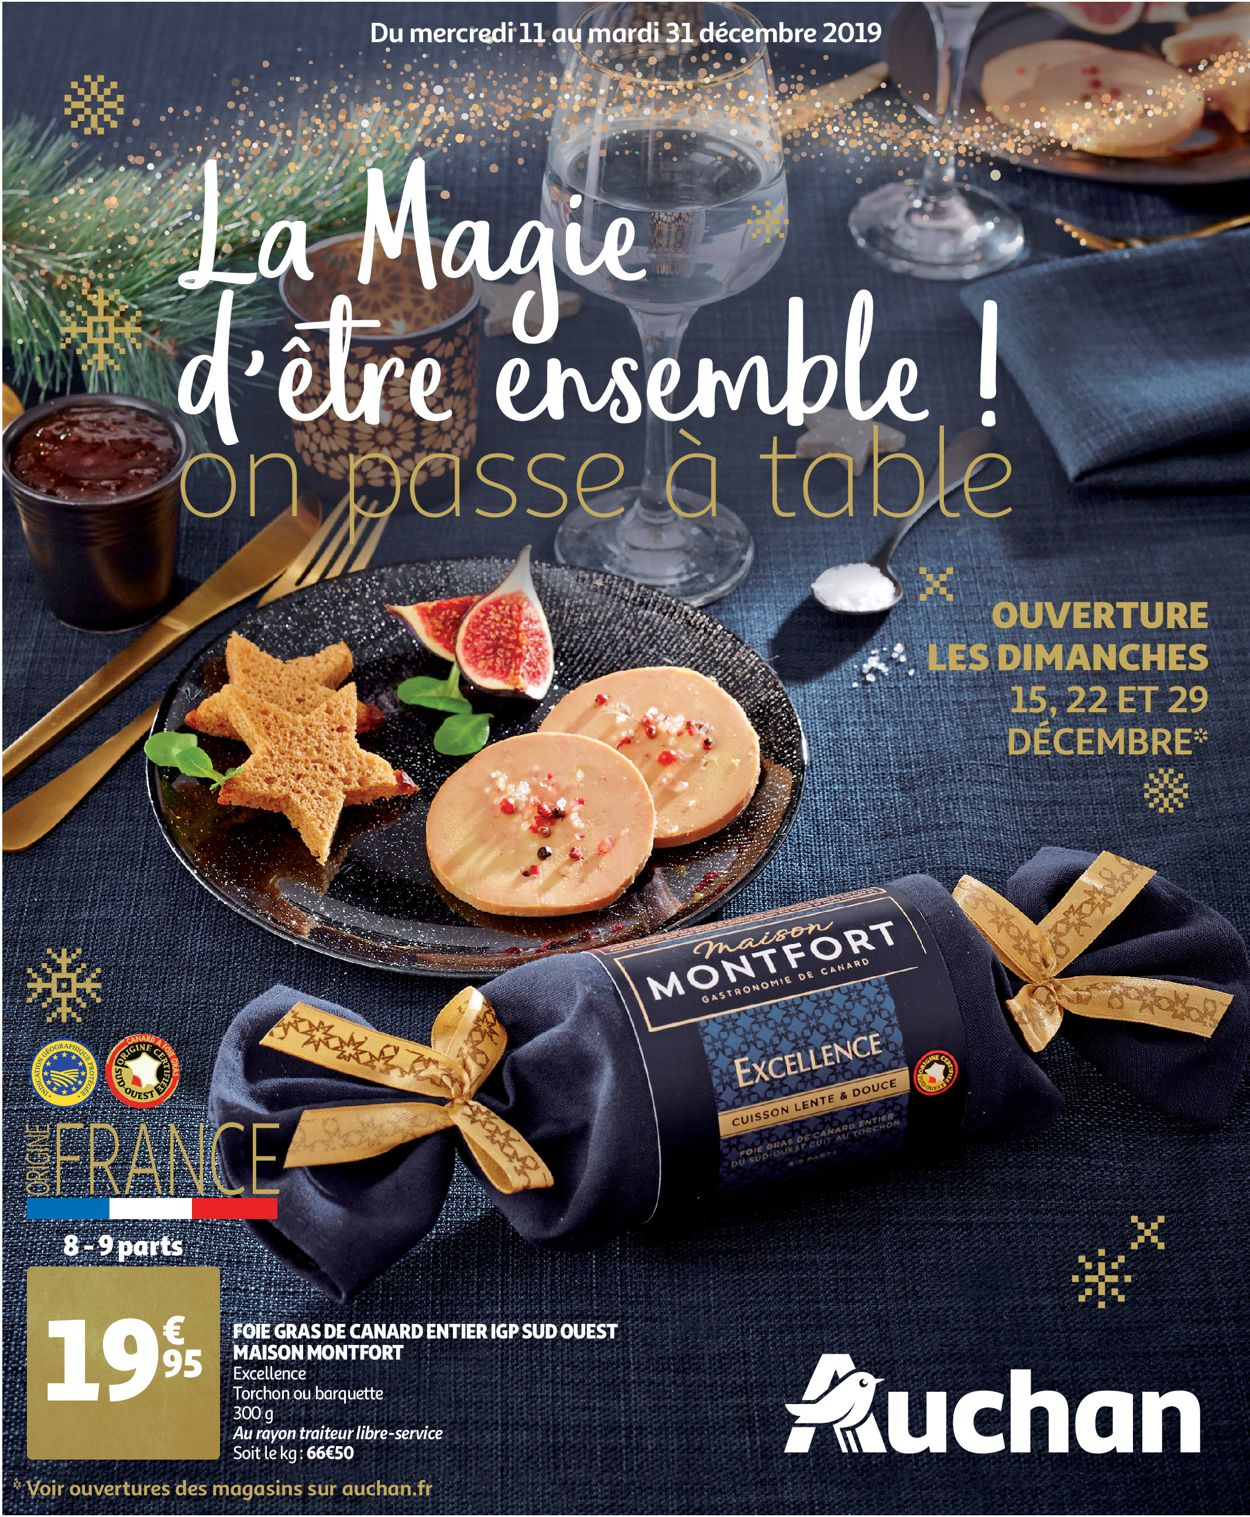 Auchan catalogue de Noël 2019 Catalogue - 11.12-31.12.2019